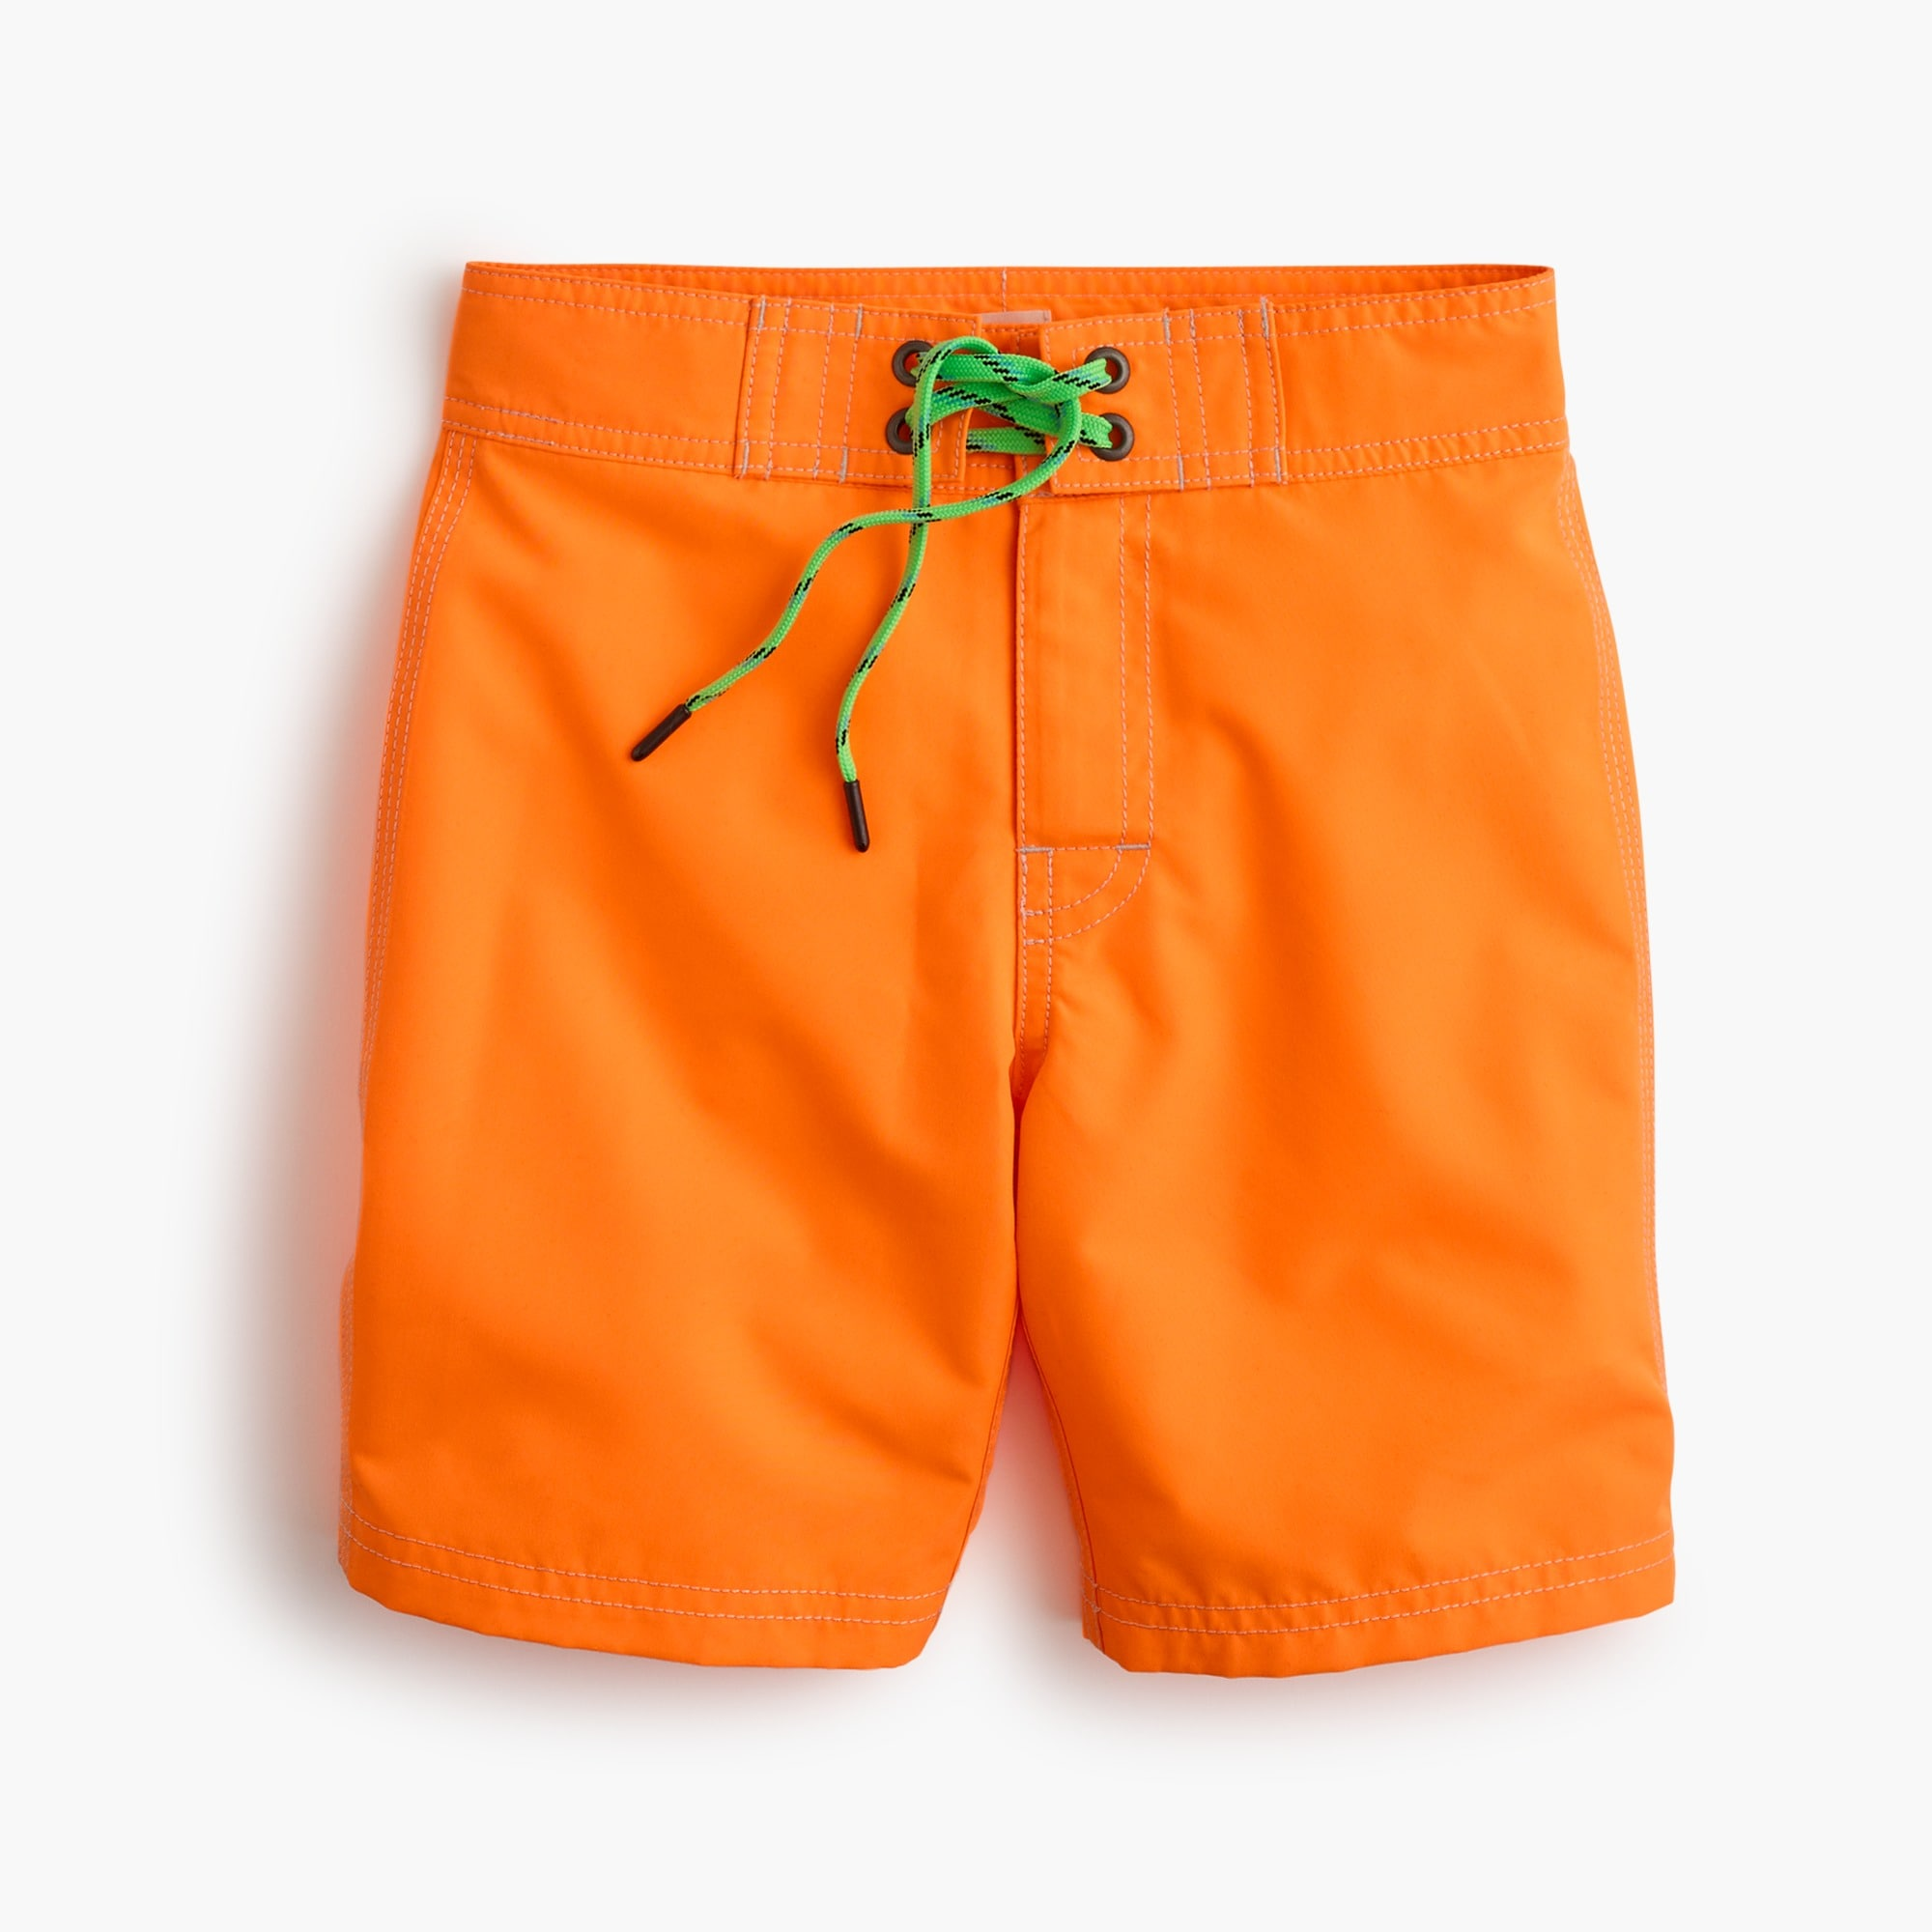 Boys' board short in bright orange